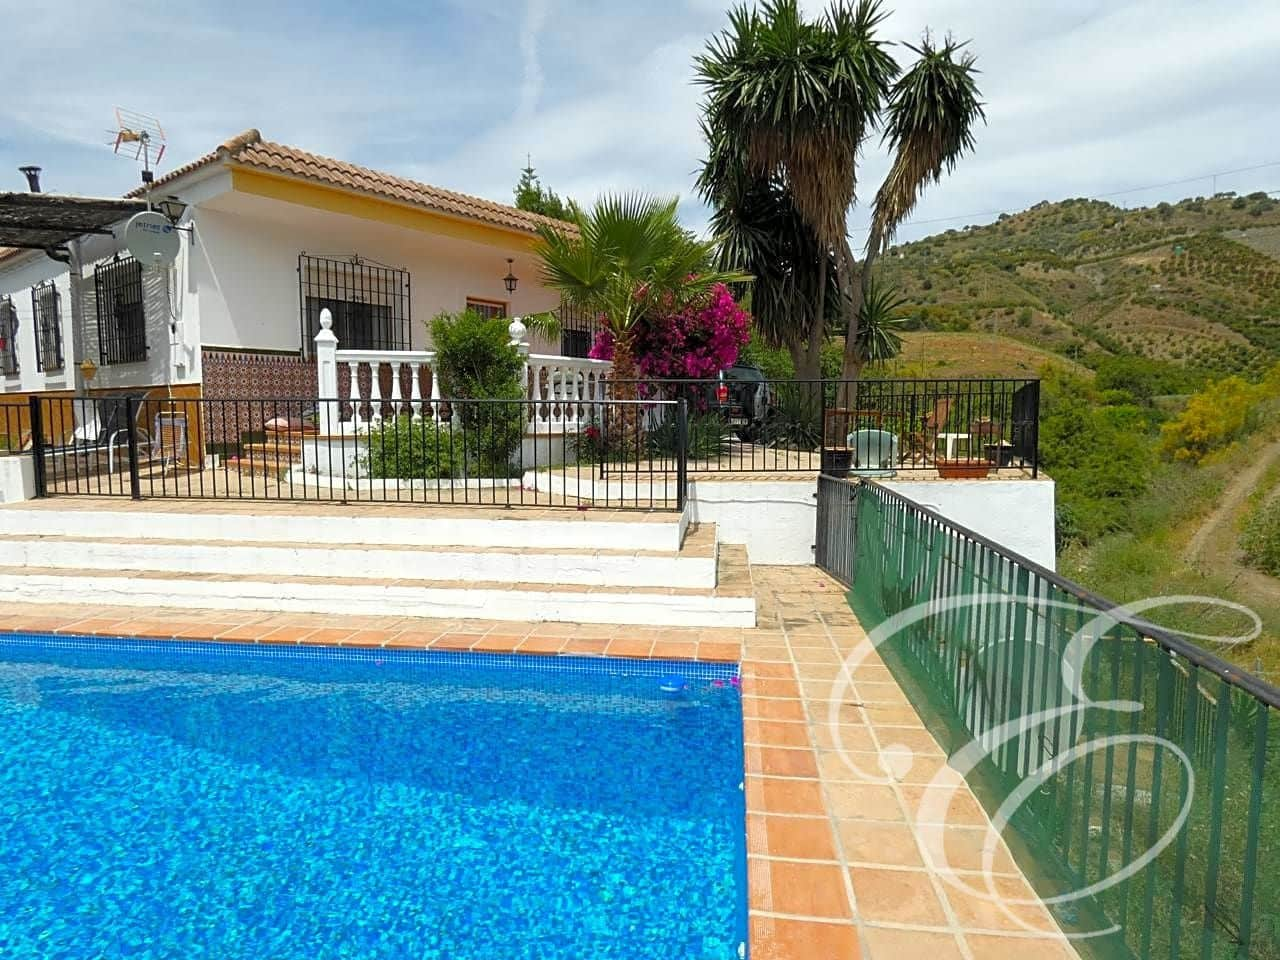 4 bedroom Finca/Country House for sale in Benamargosa with pool - € 180,000 (Ref: 4667777)